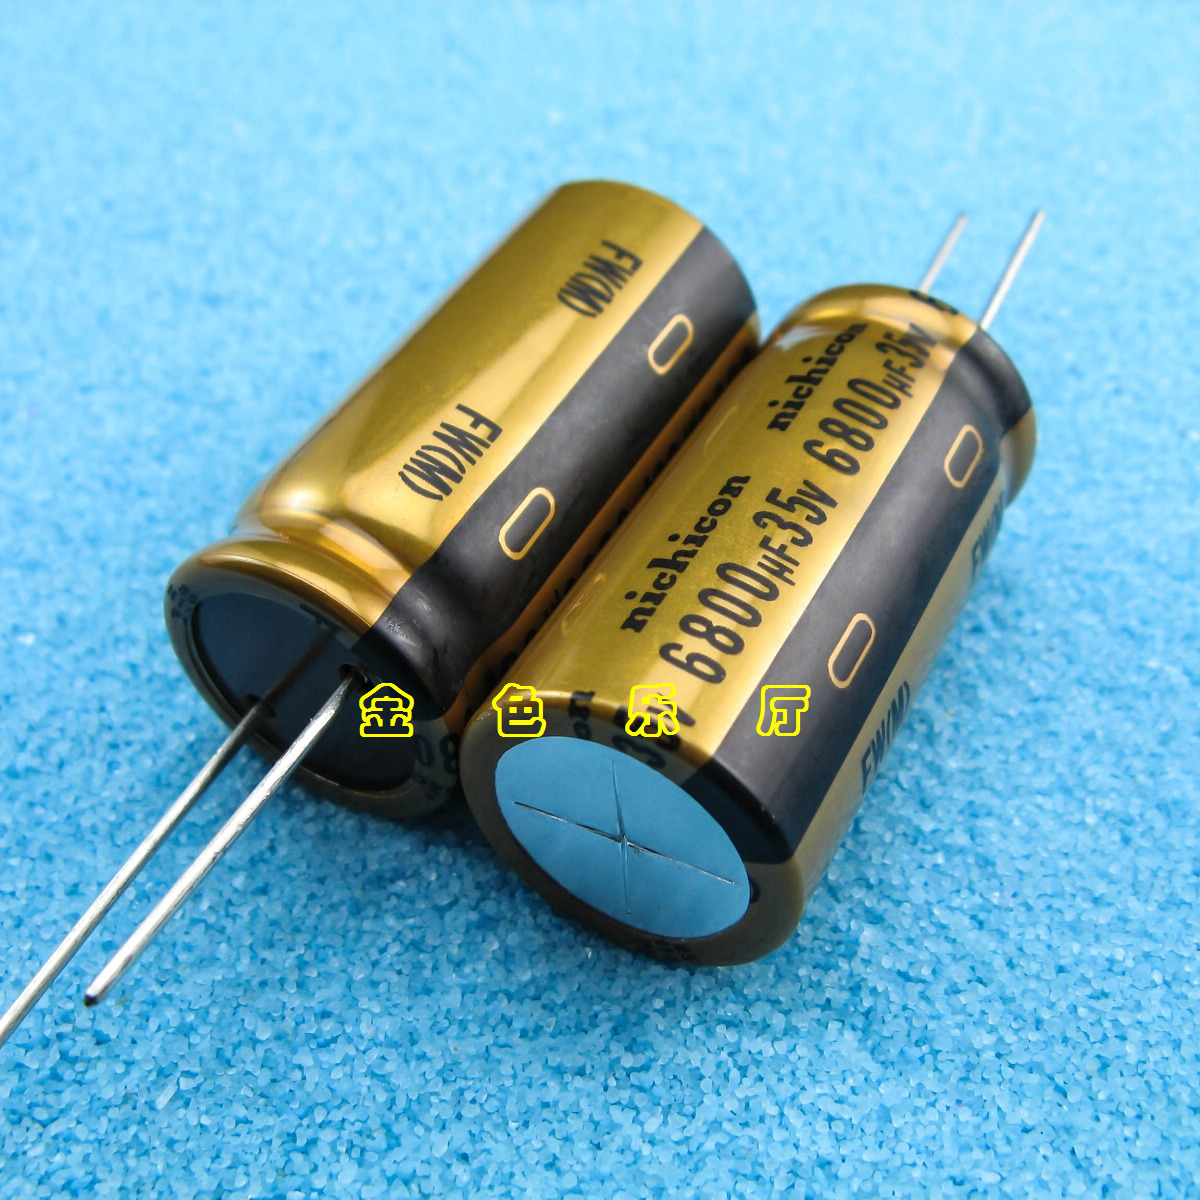 2pcs NEW NICHICON FW 6800UF 35V 20X41MM 35V 6800UF Audio Electrolytic Capacitor 35V6800uF Filter Amplifier 6800uF/35V